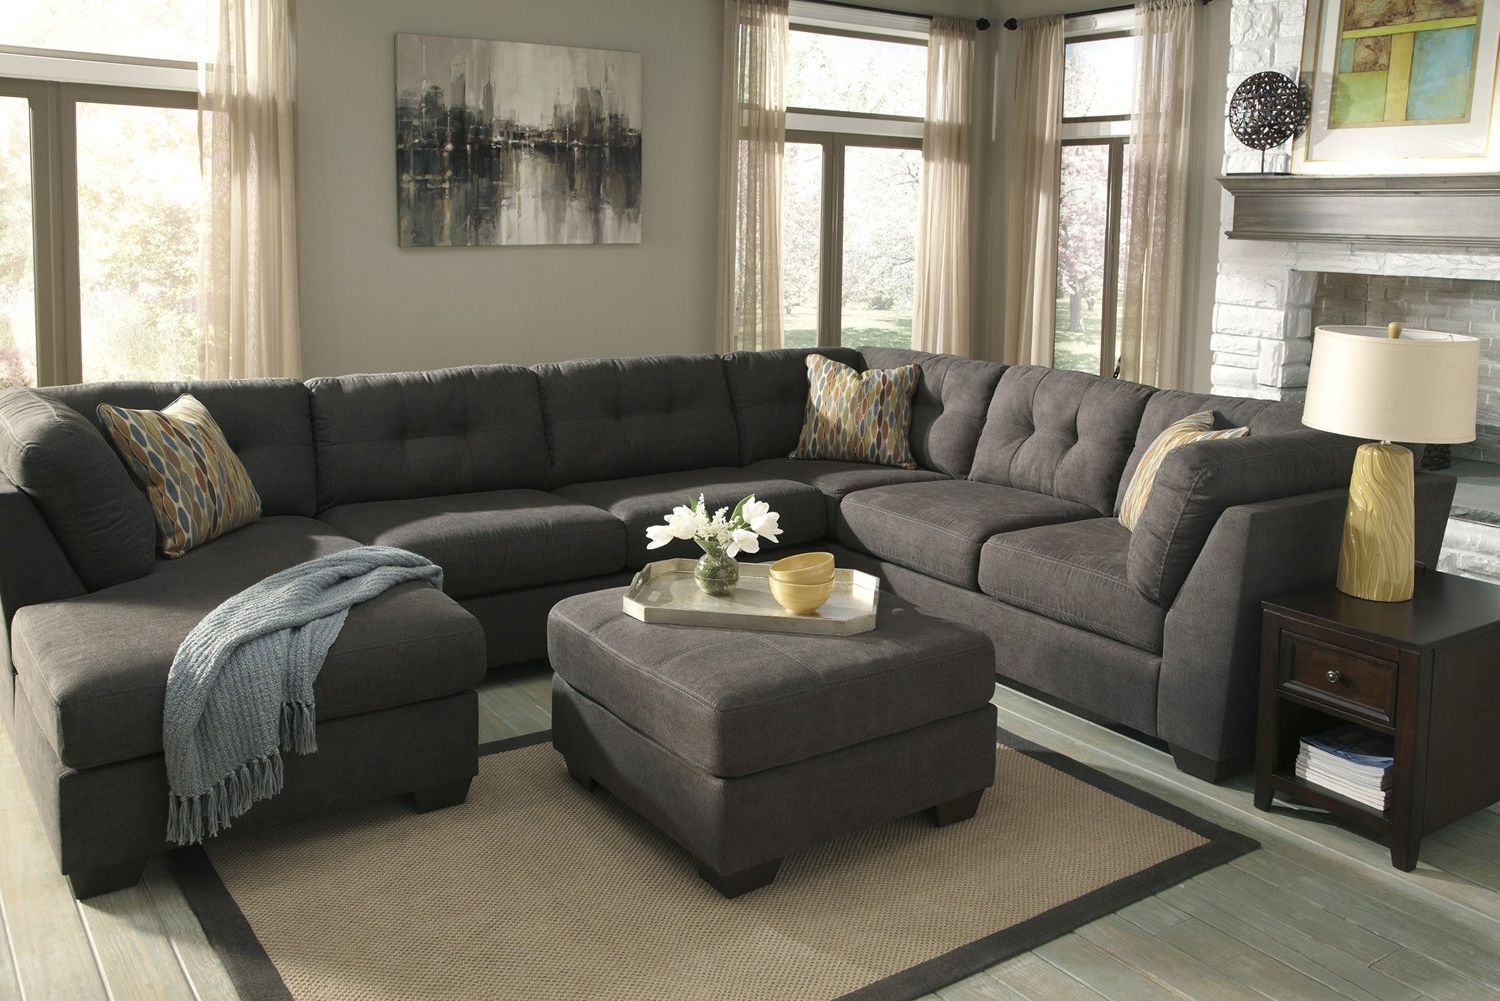 Elk Grove Ca Sectional Sofas With Well Known Delta City Steel 3 Piece Sectional Sofa With Right Arm Facing (View 7 of 20)